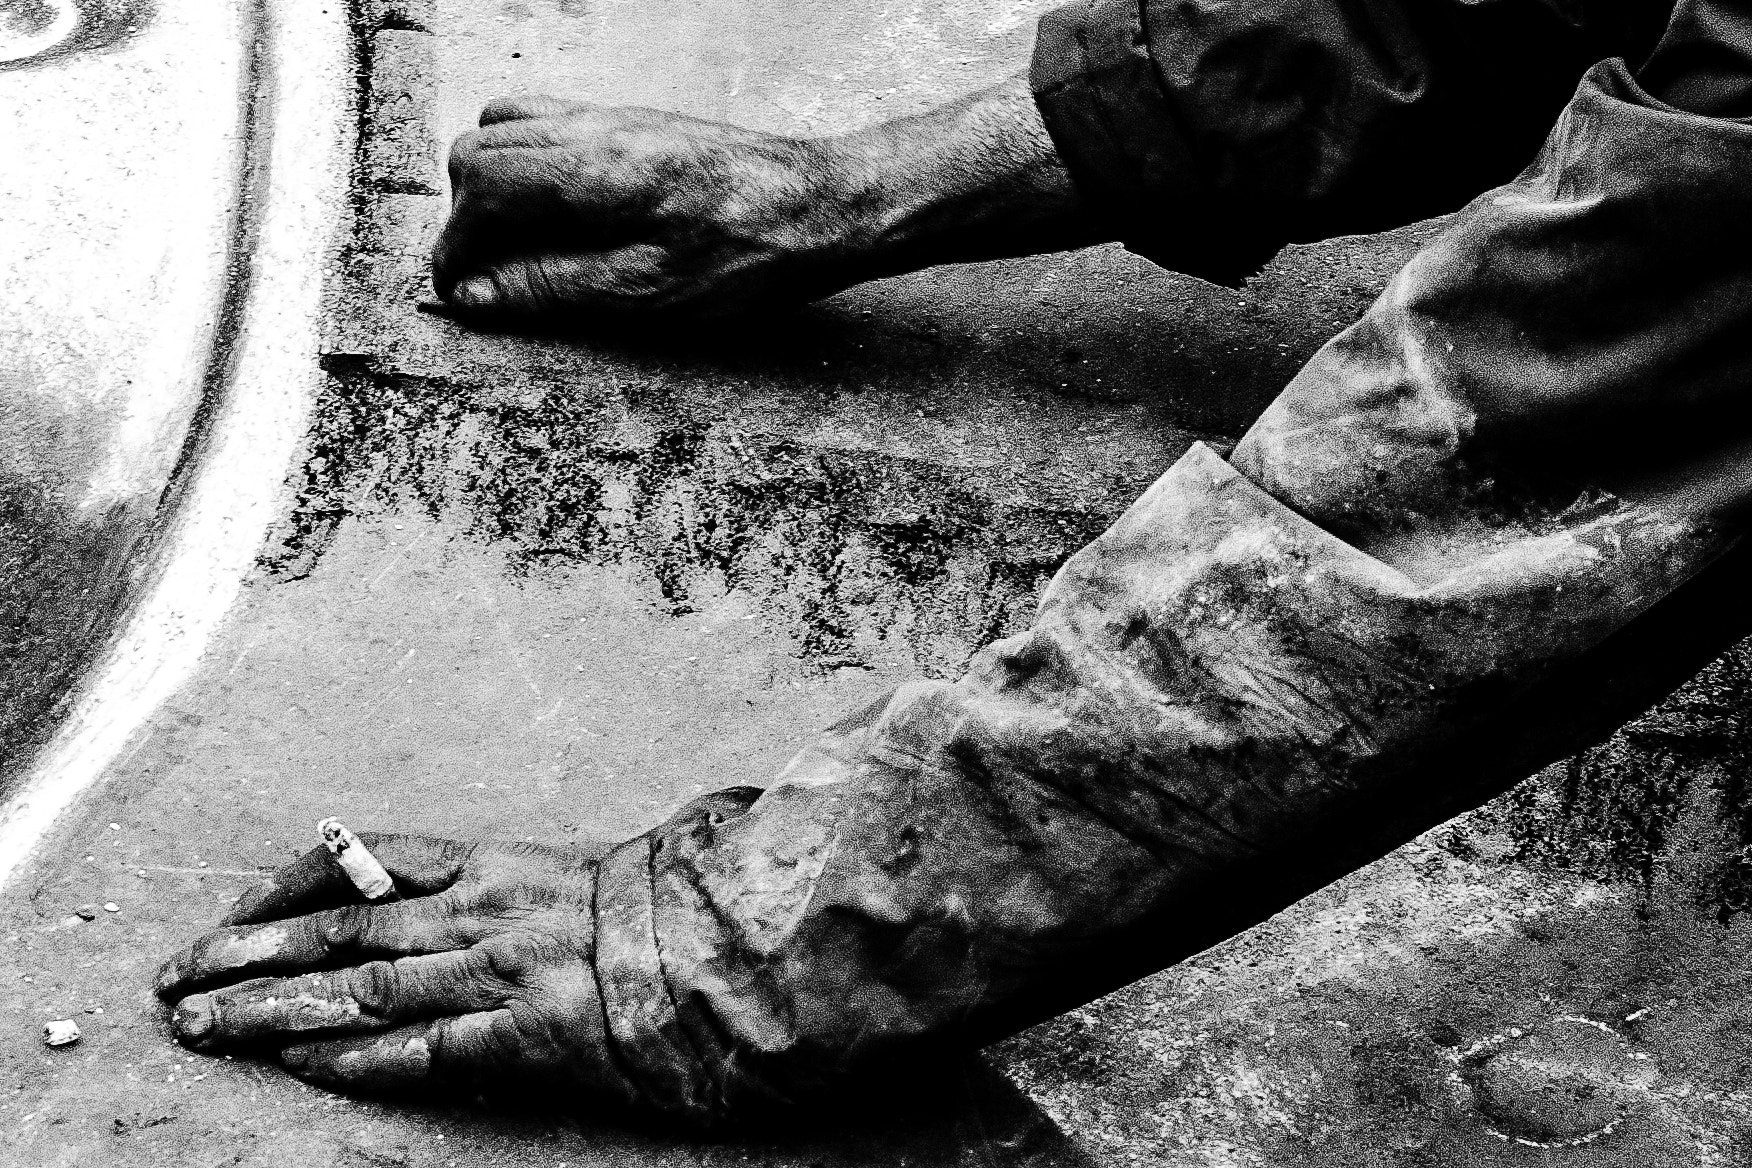 Photograph Hands of an artist by Giorgio Savona on 500px